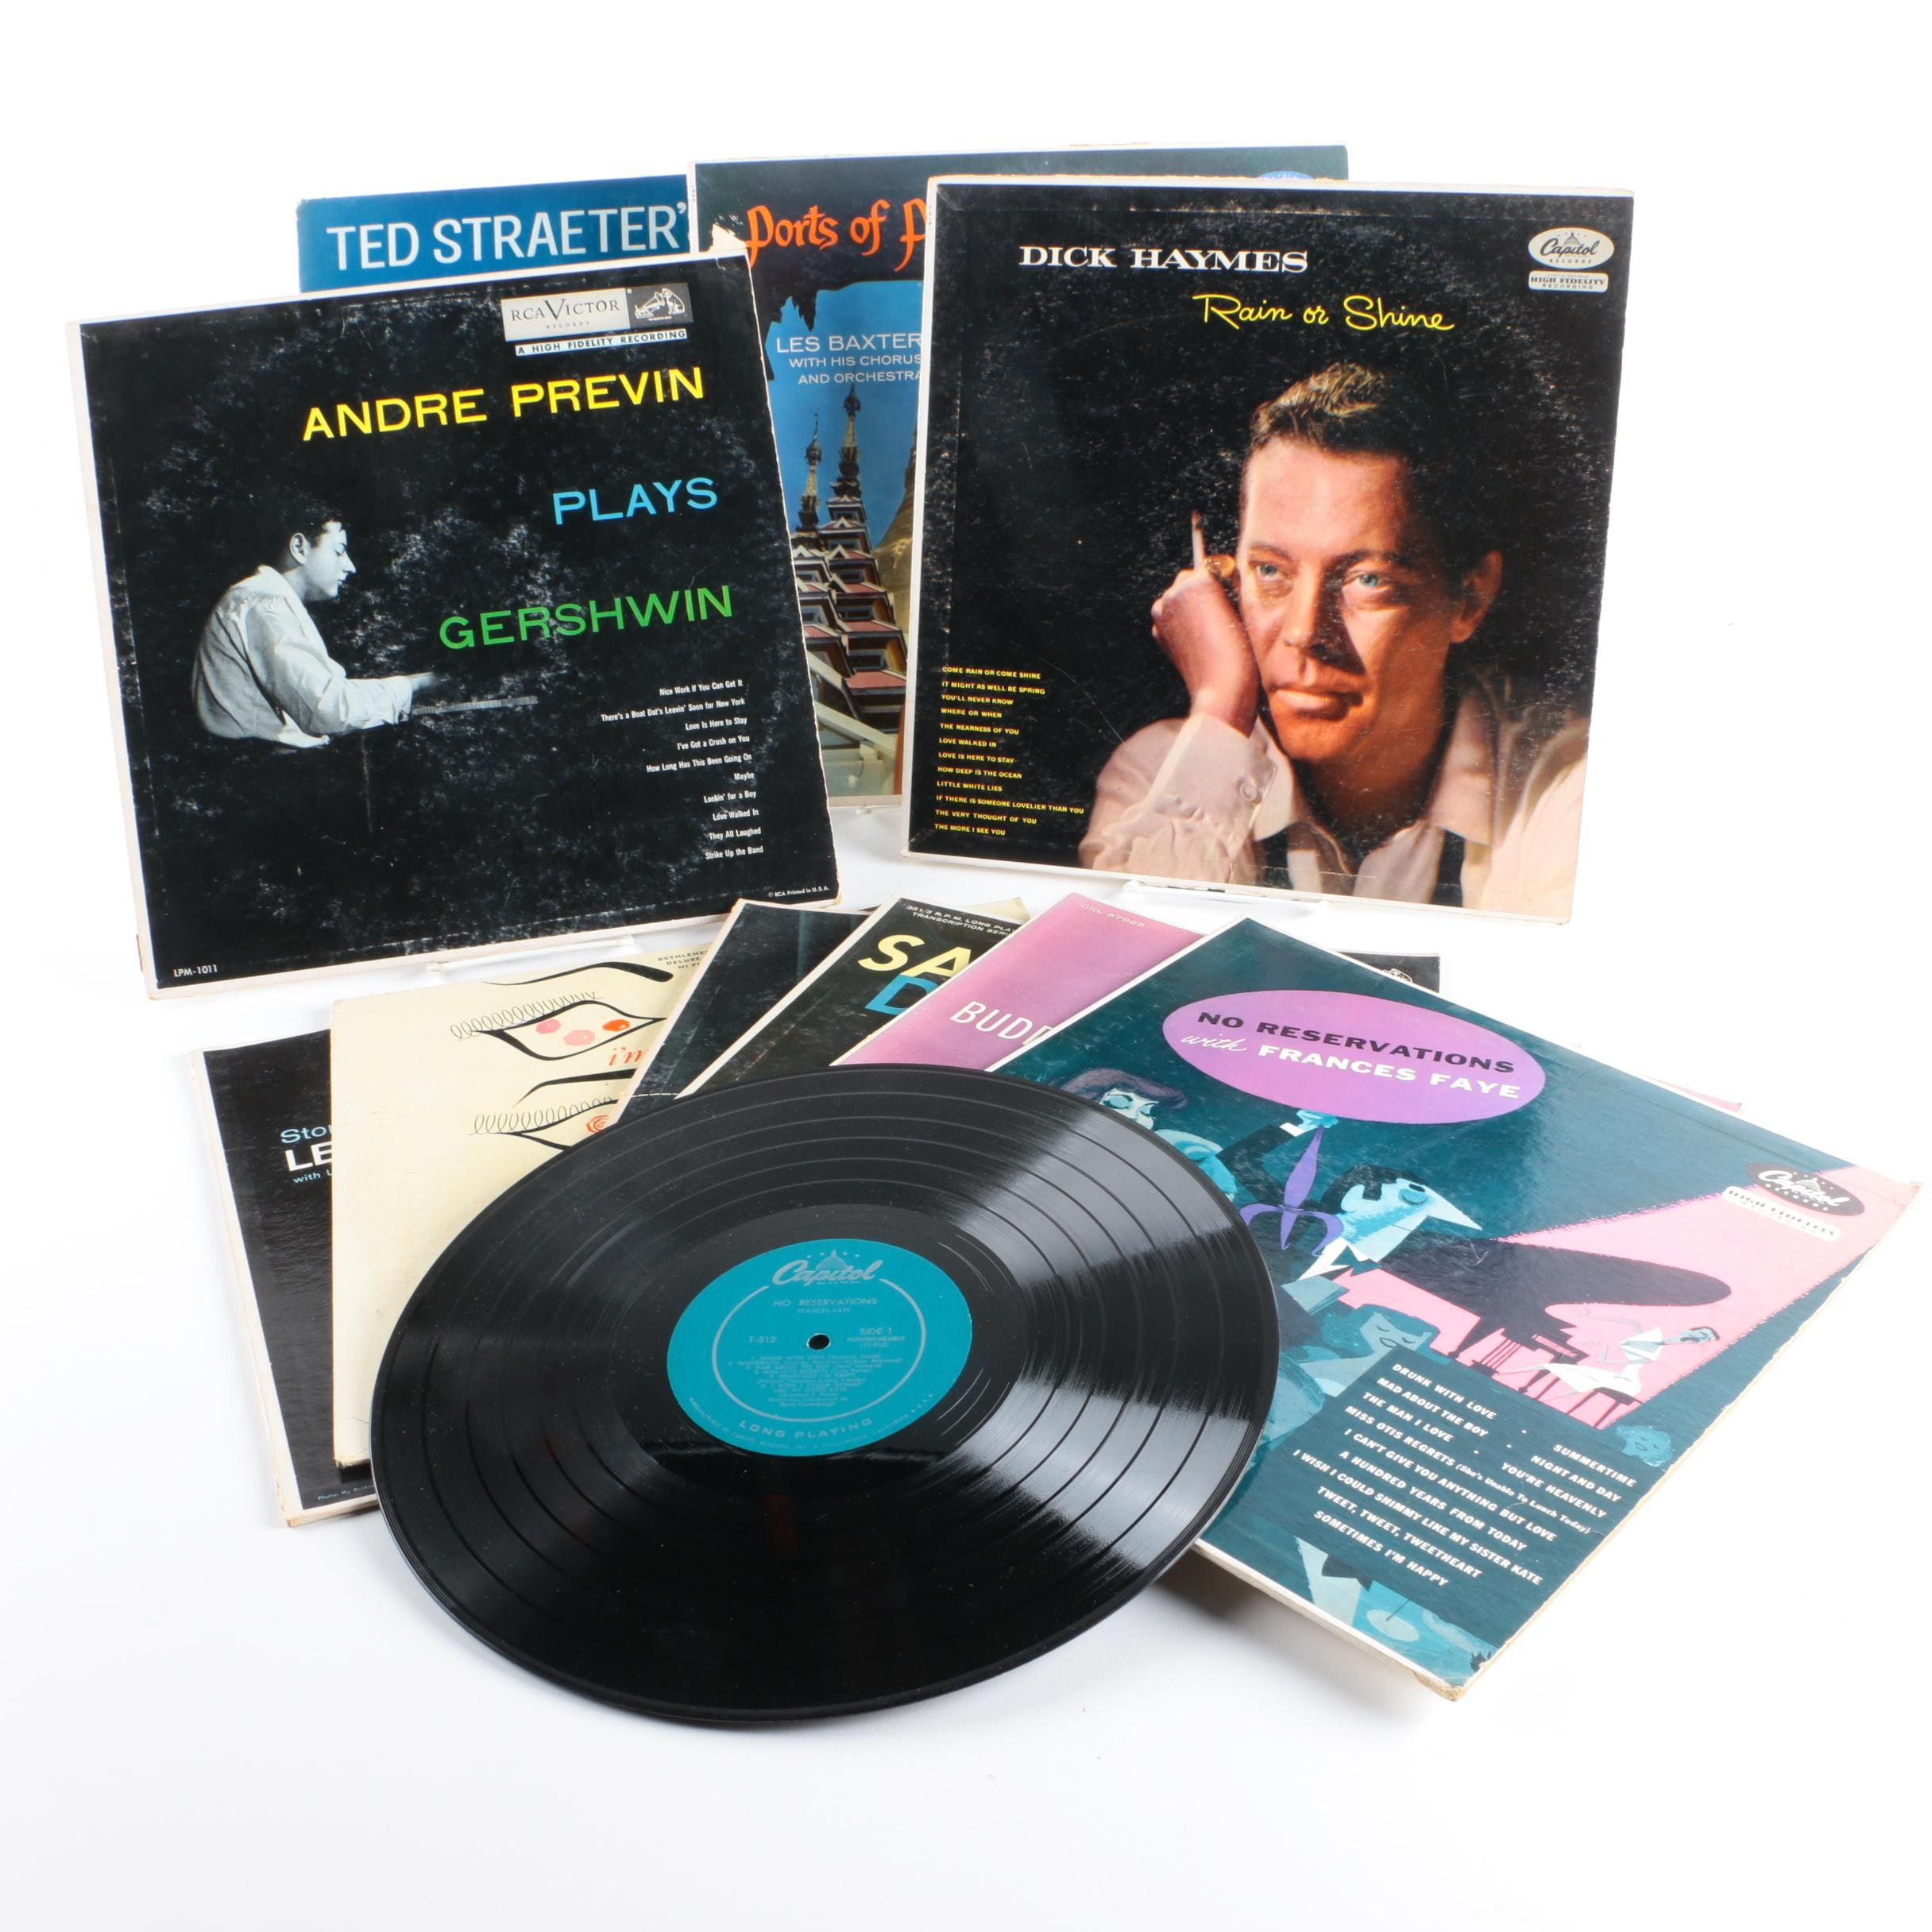 Frances Faye, Dick Haymes, Buddy Greco, Matt Dennis and Other LPs